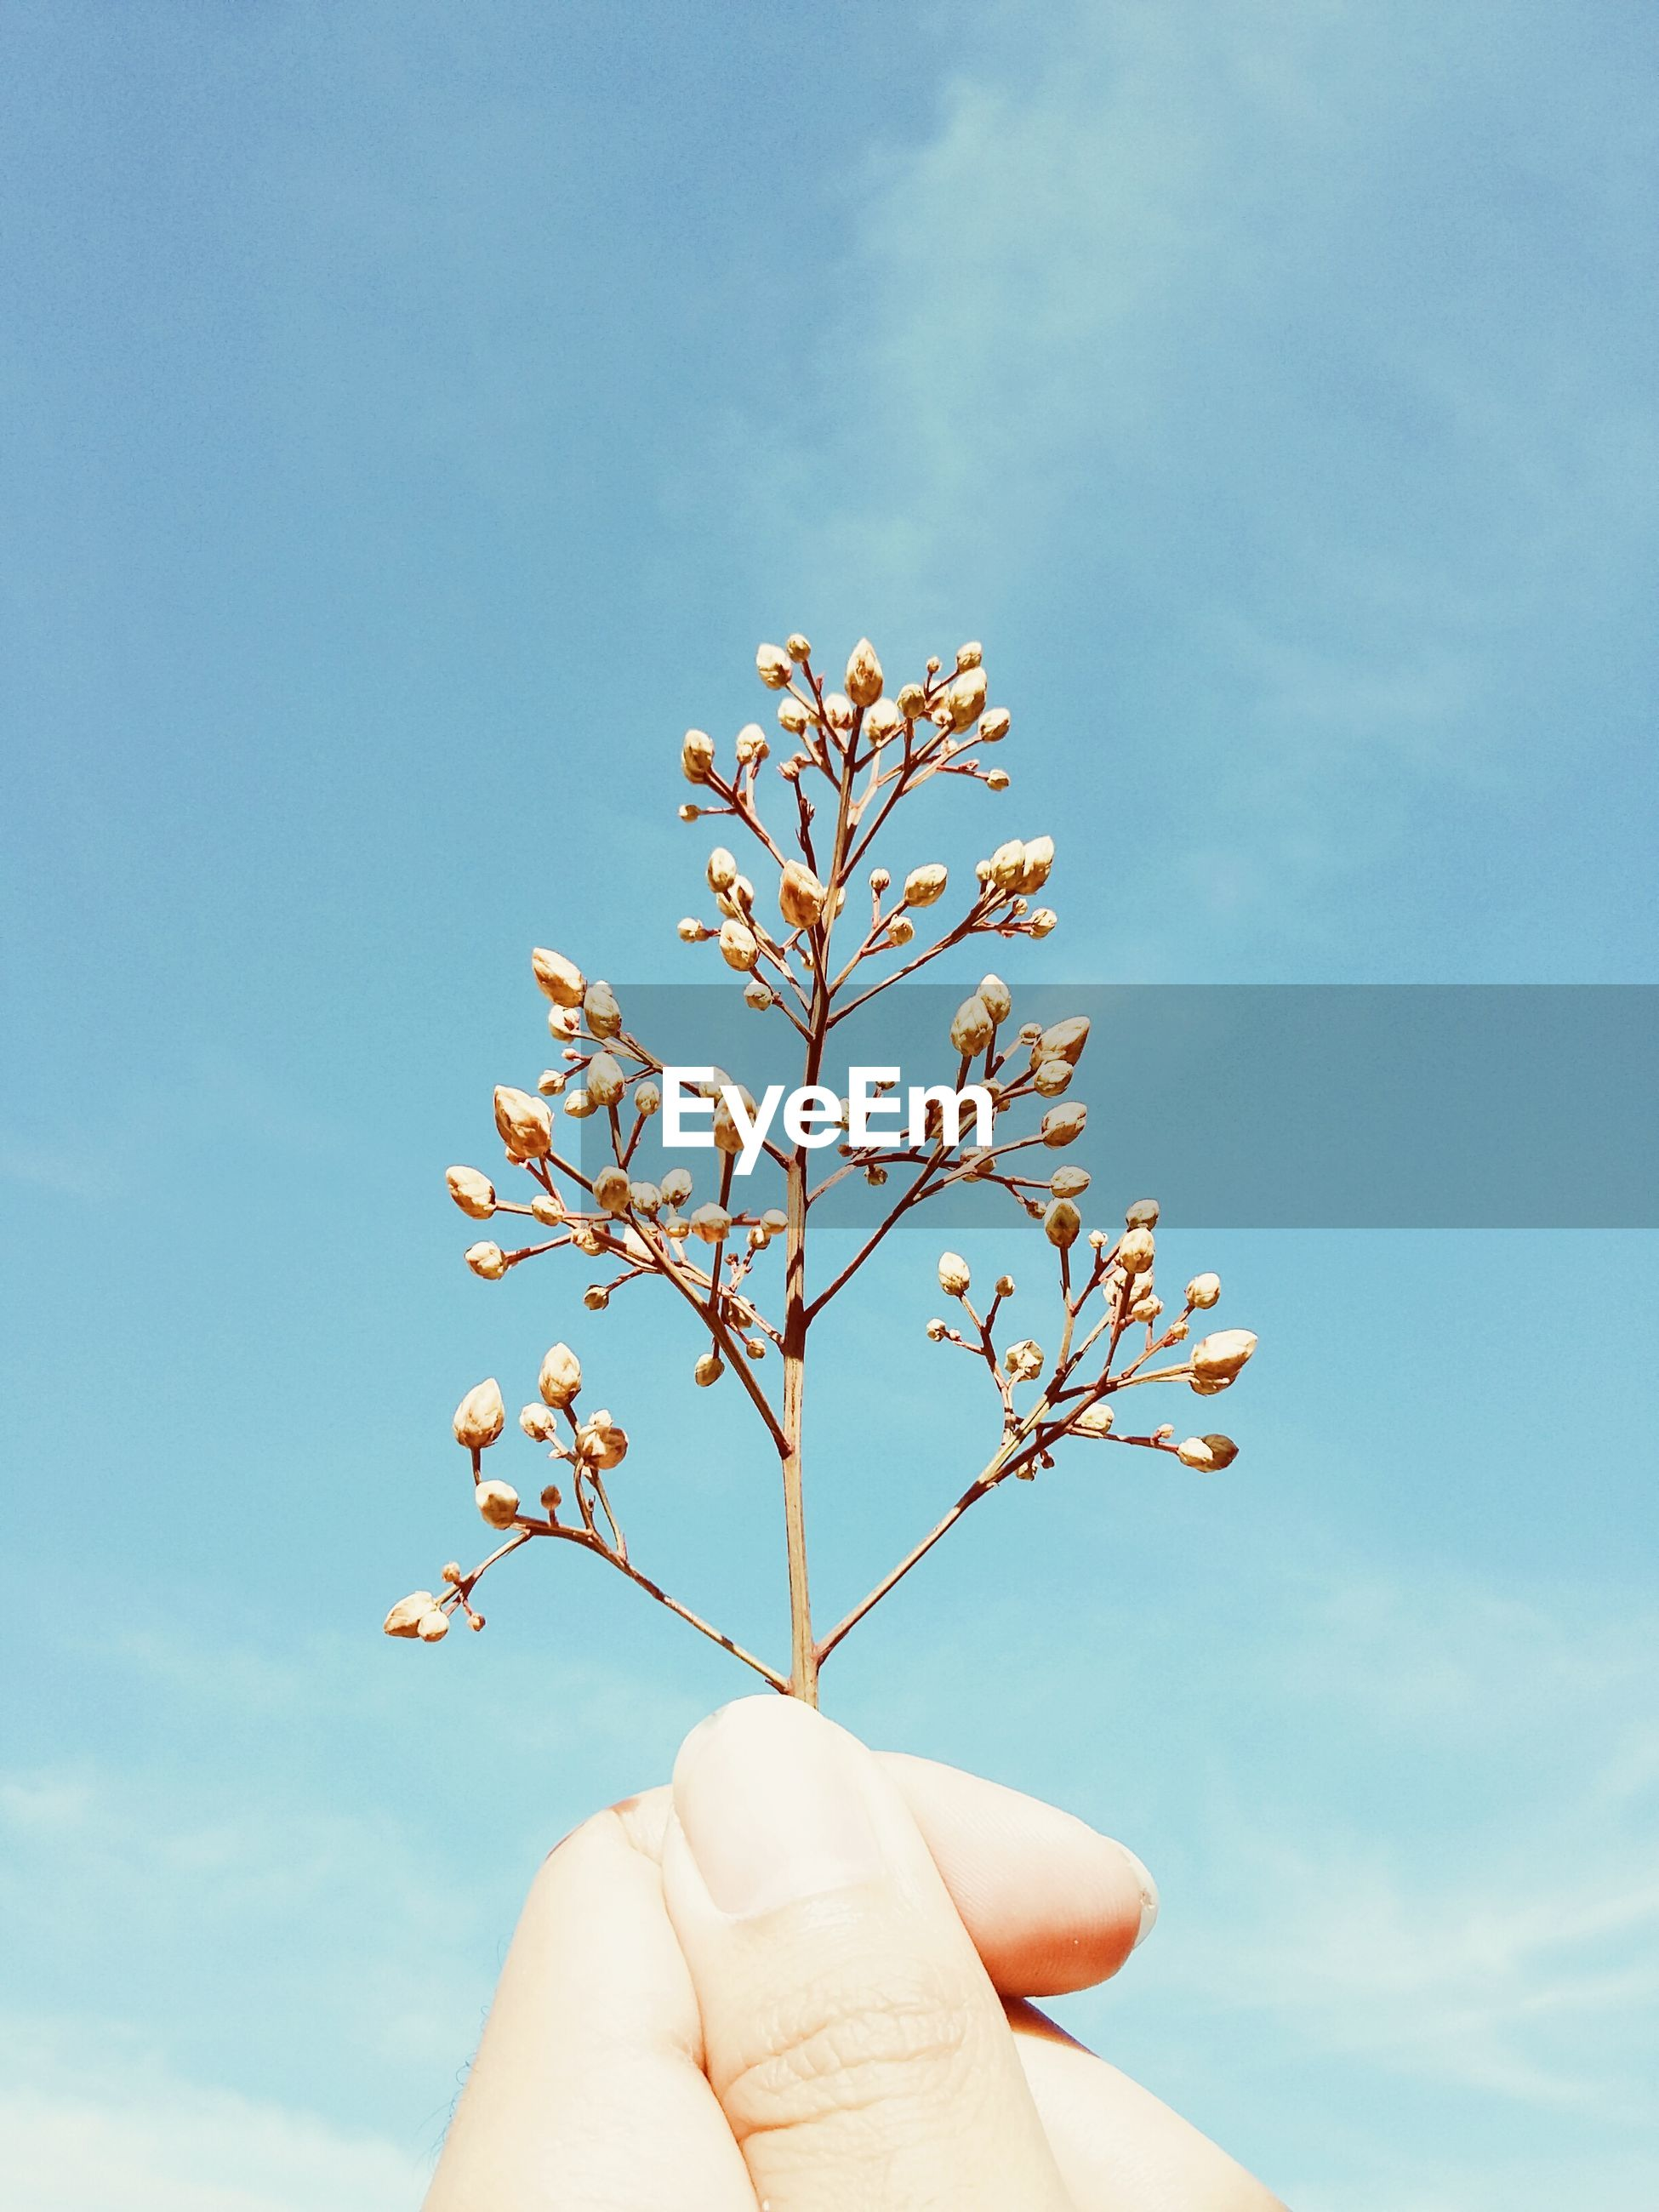 Cropped hand holding flower buds against sky